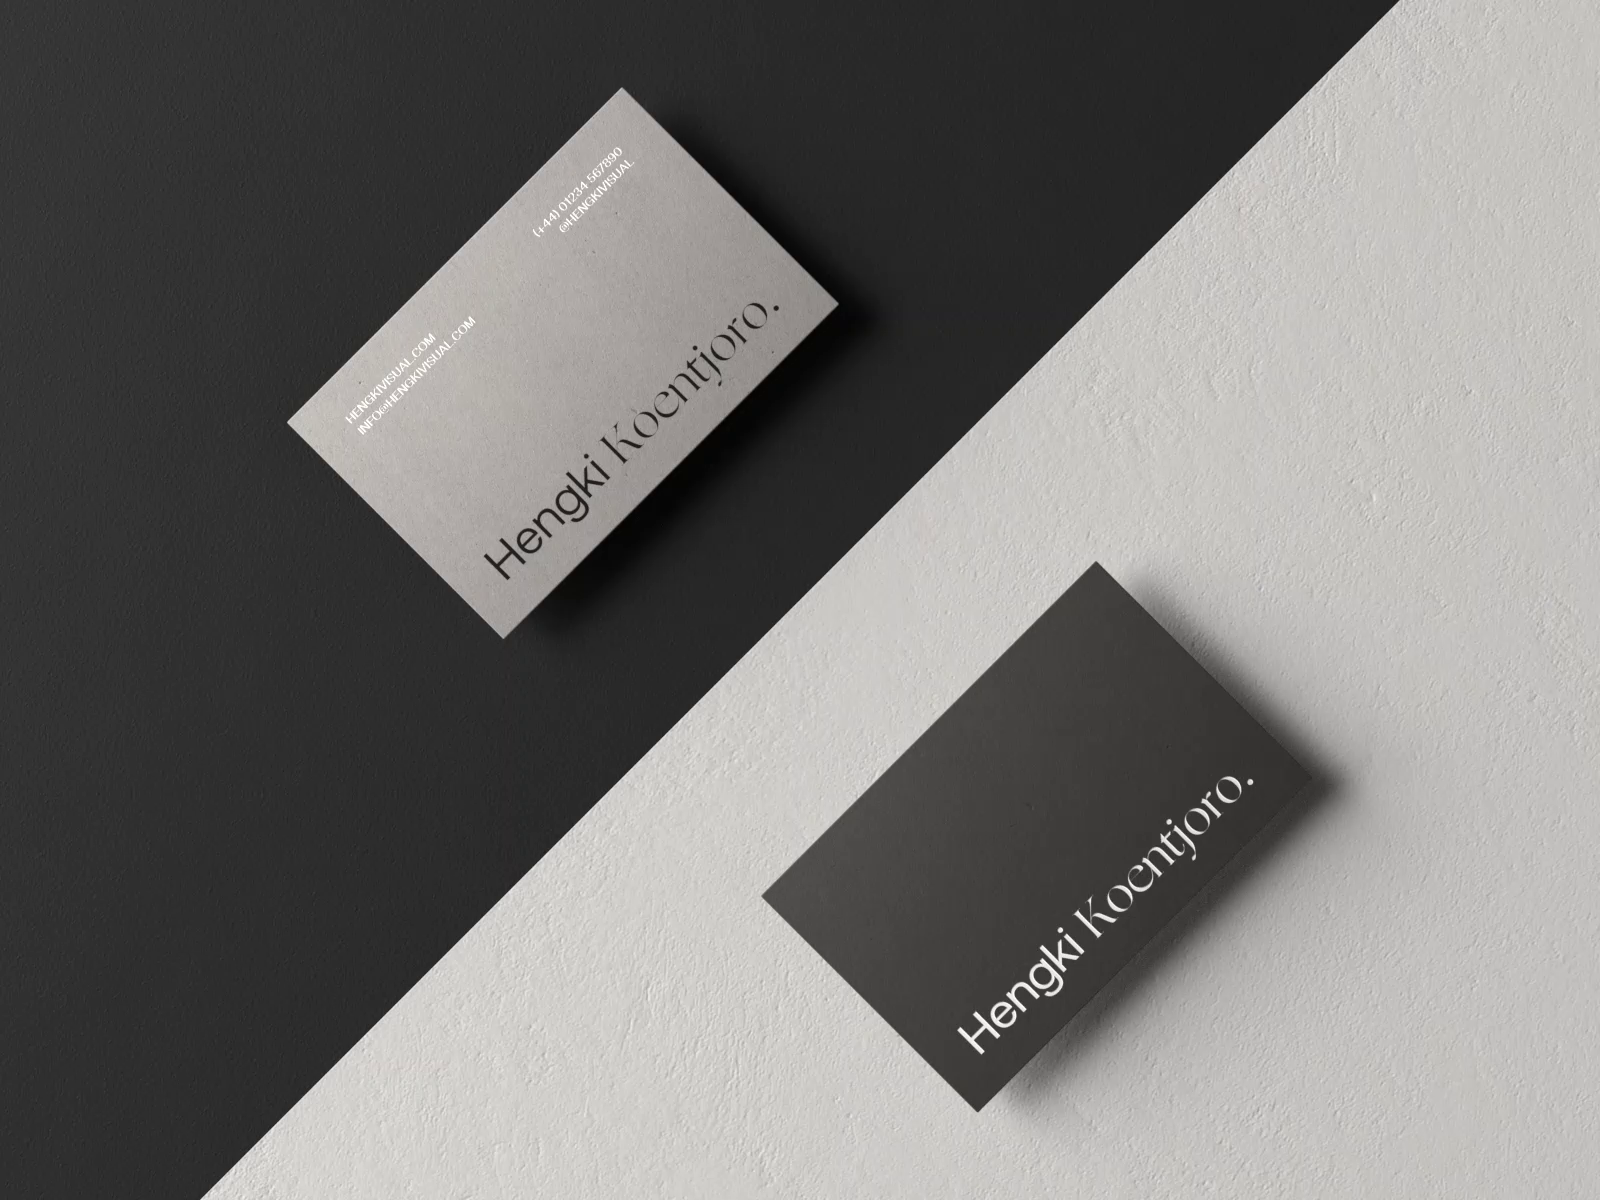 Unnecessary Business Card Presentation By Nathan Riley Presentation Business Cards Cards